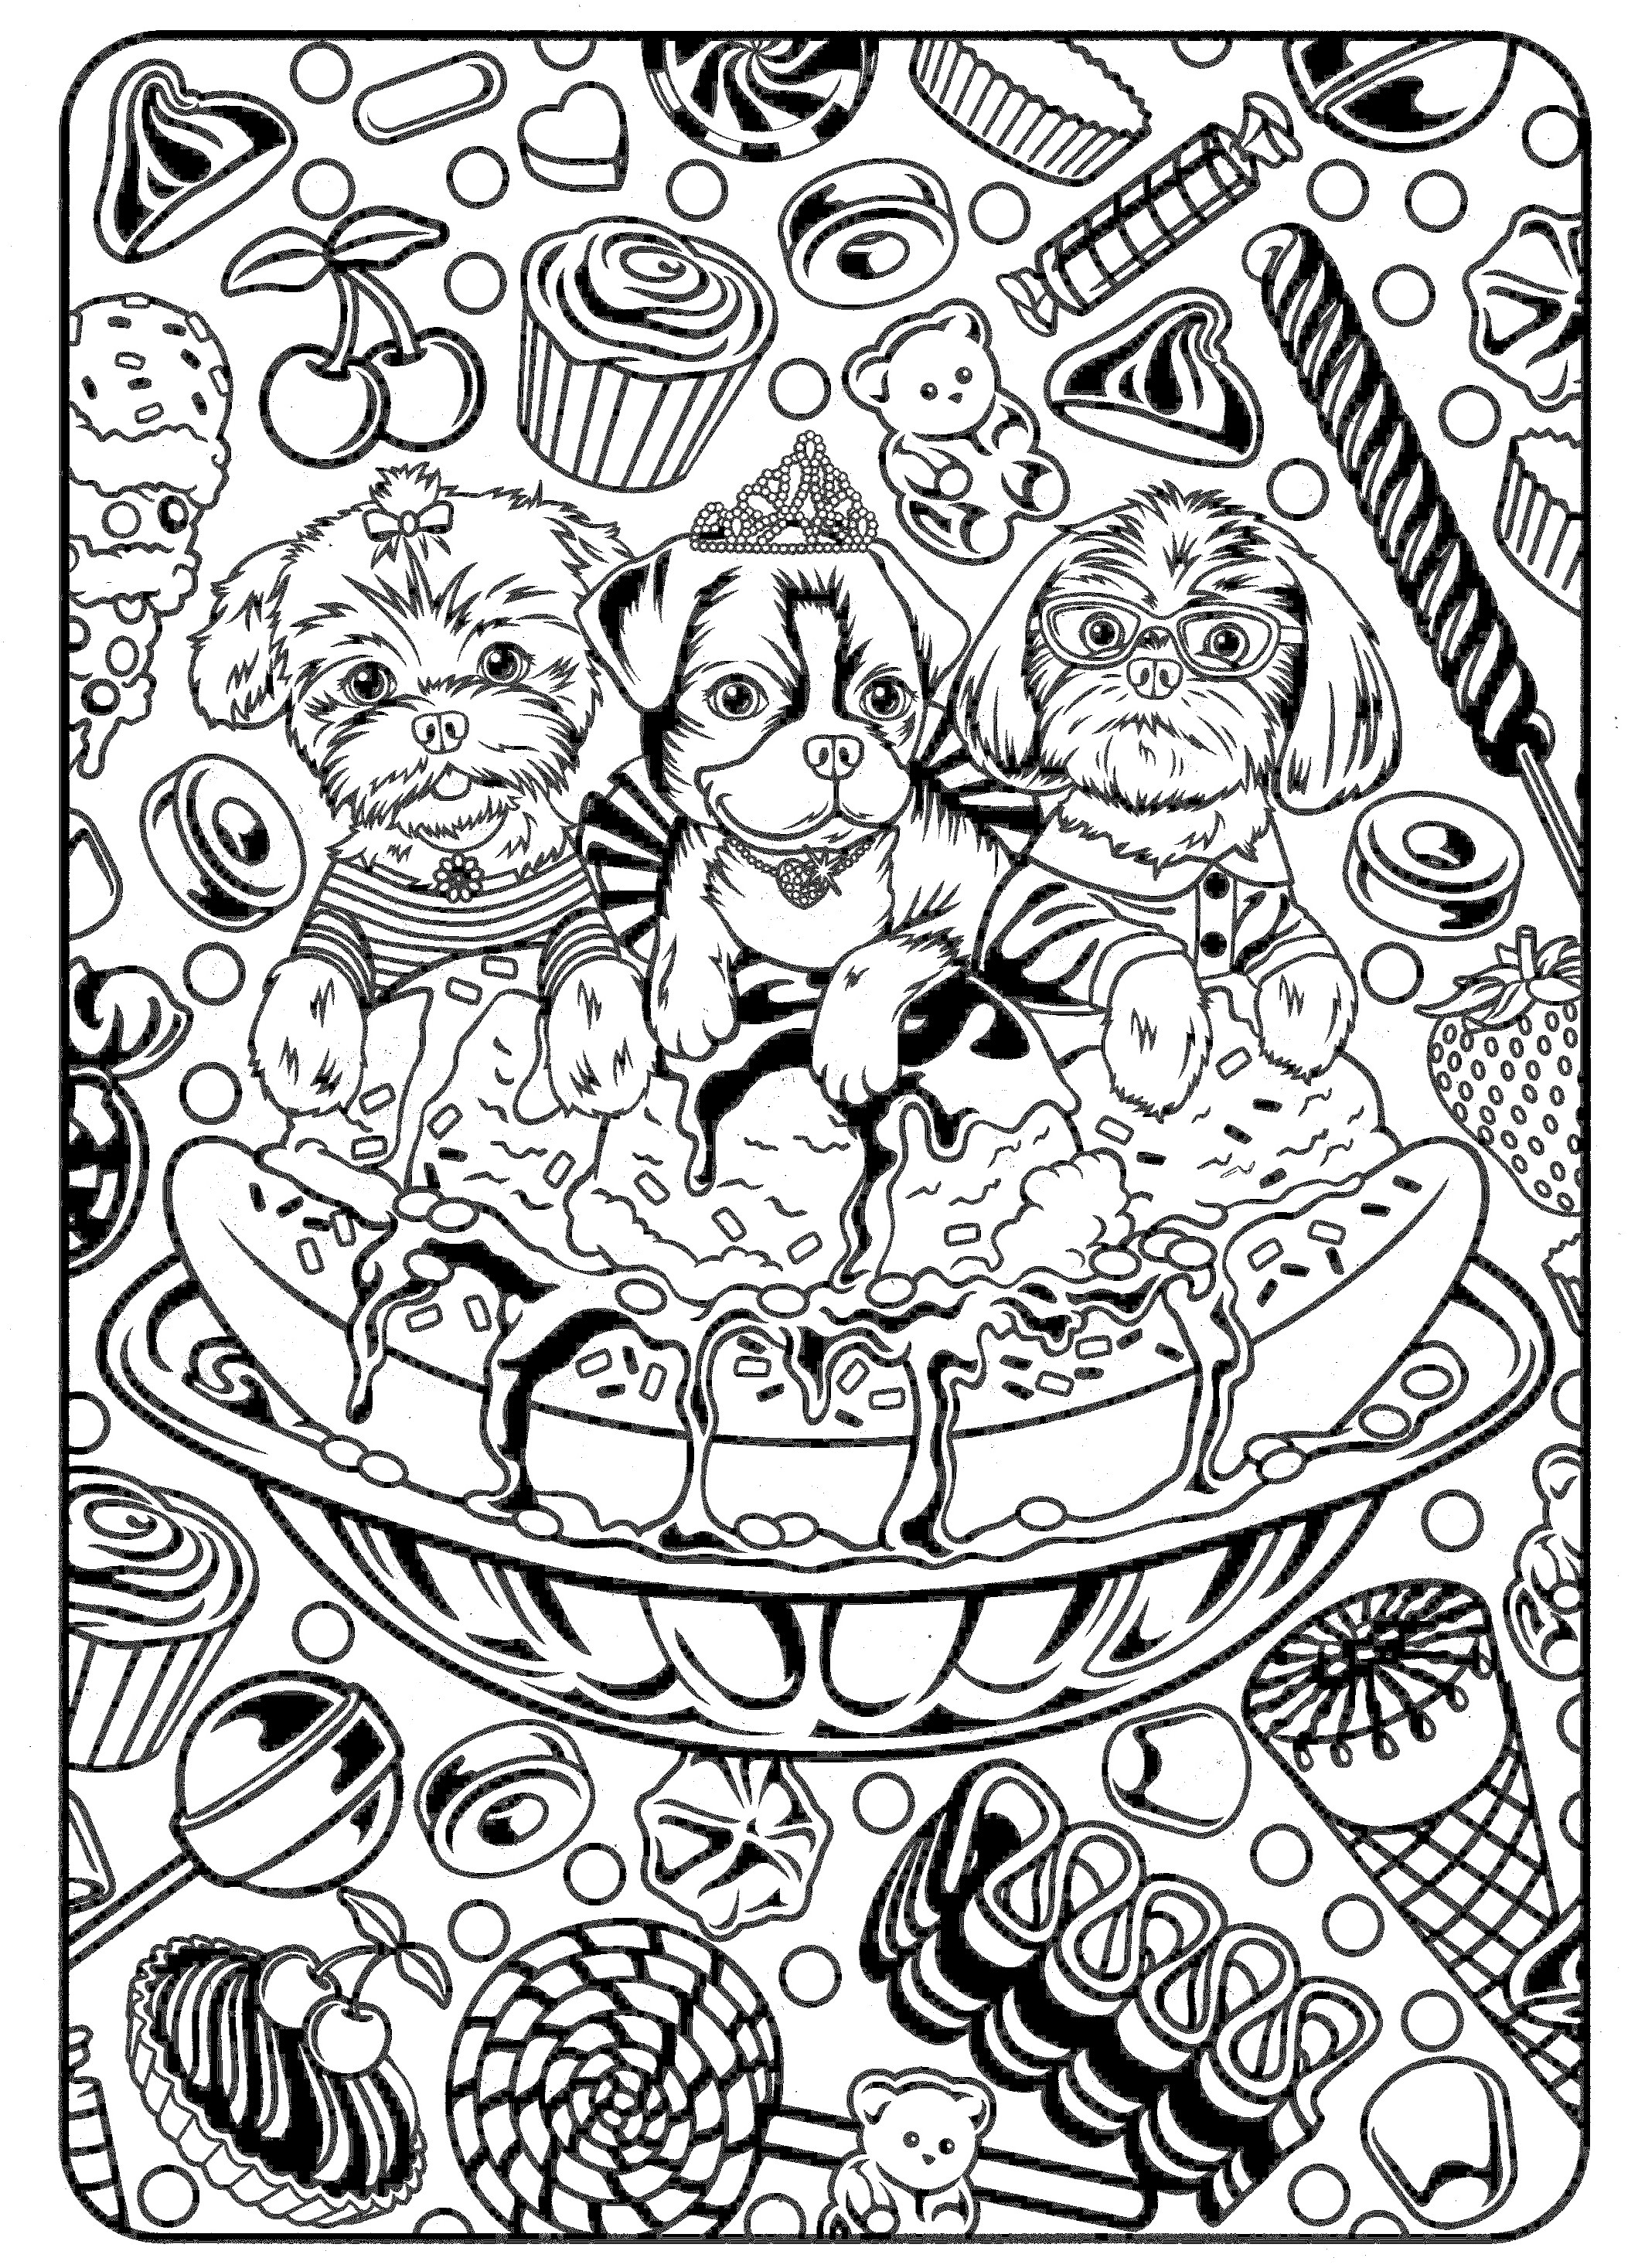 colouring in pictures for girls cute coloring pages best coloring pages for kids colouring pictures for in girls